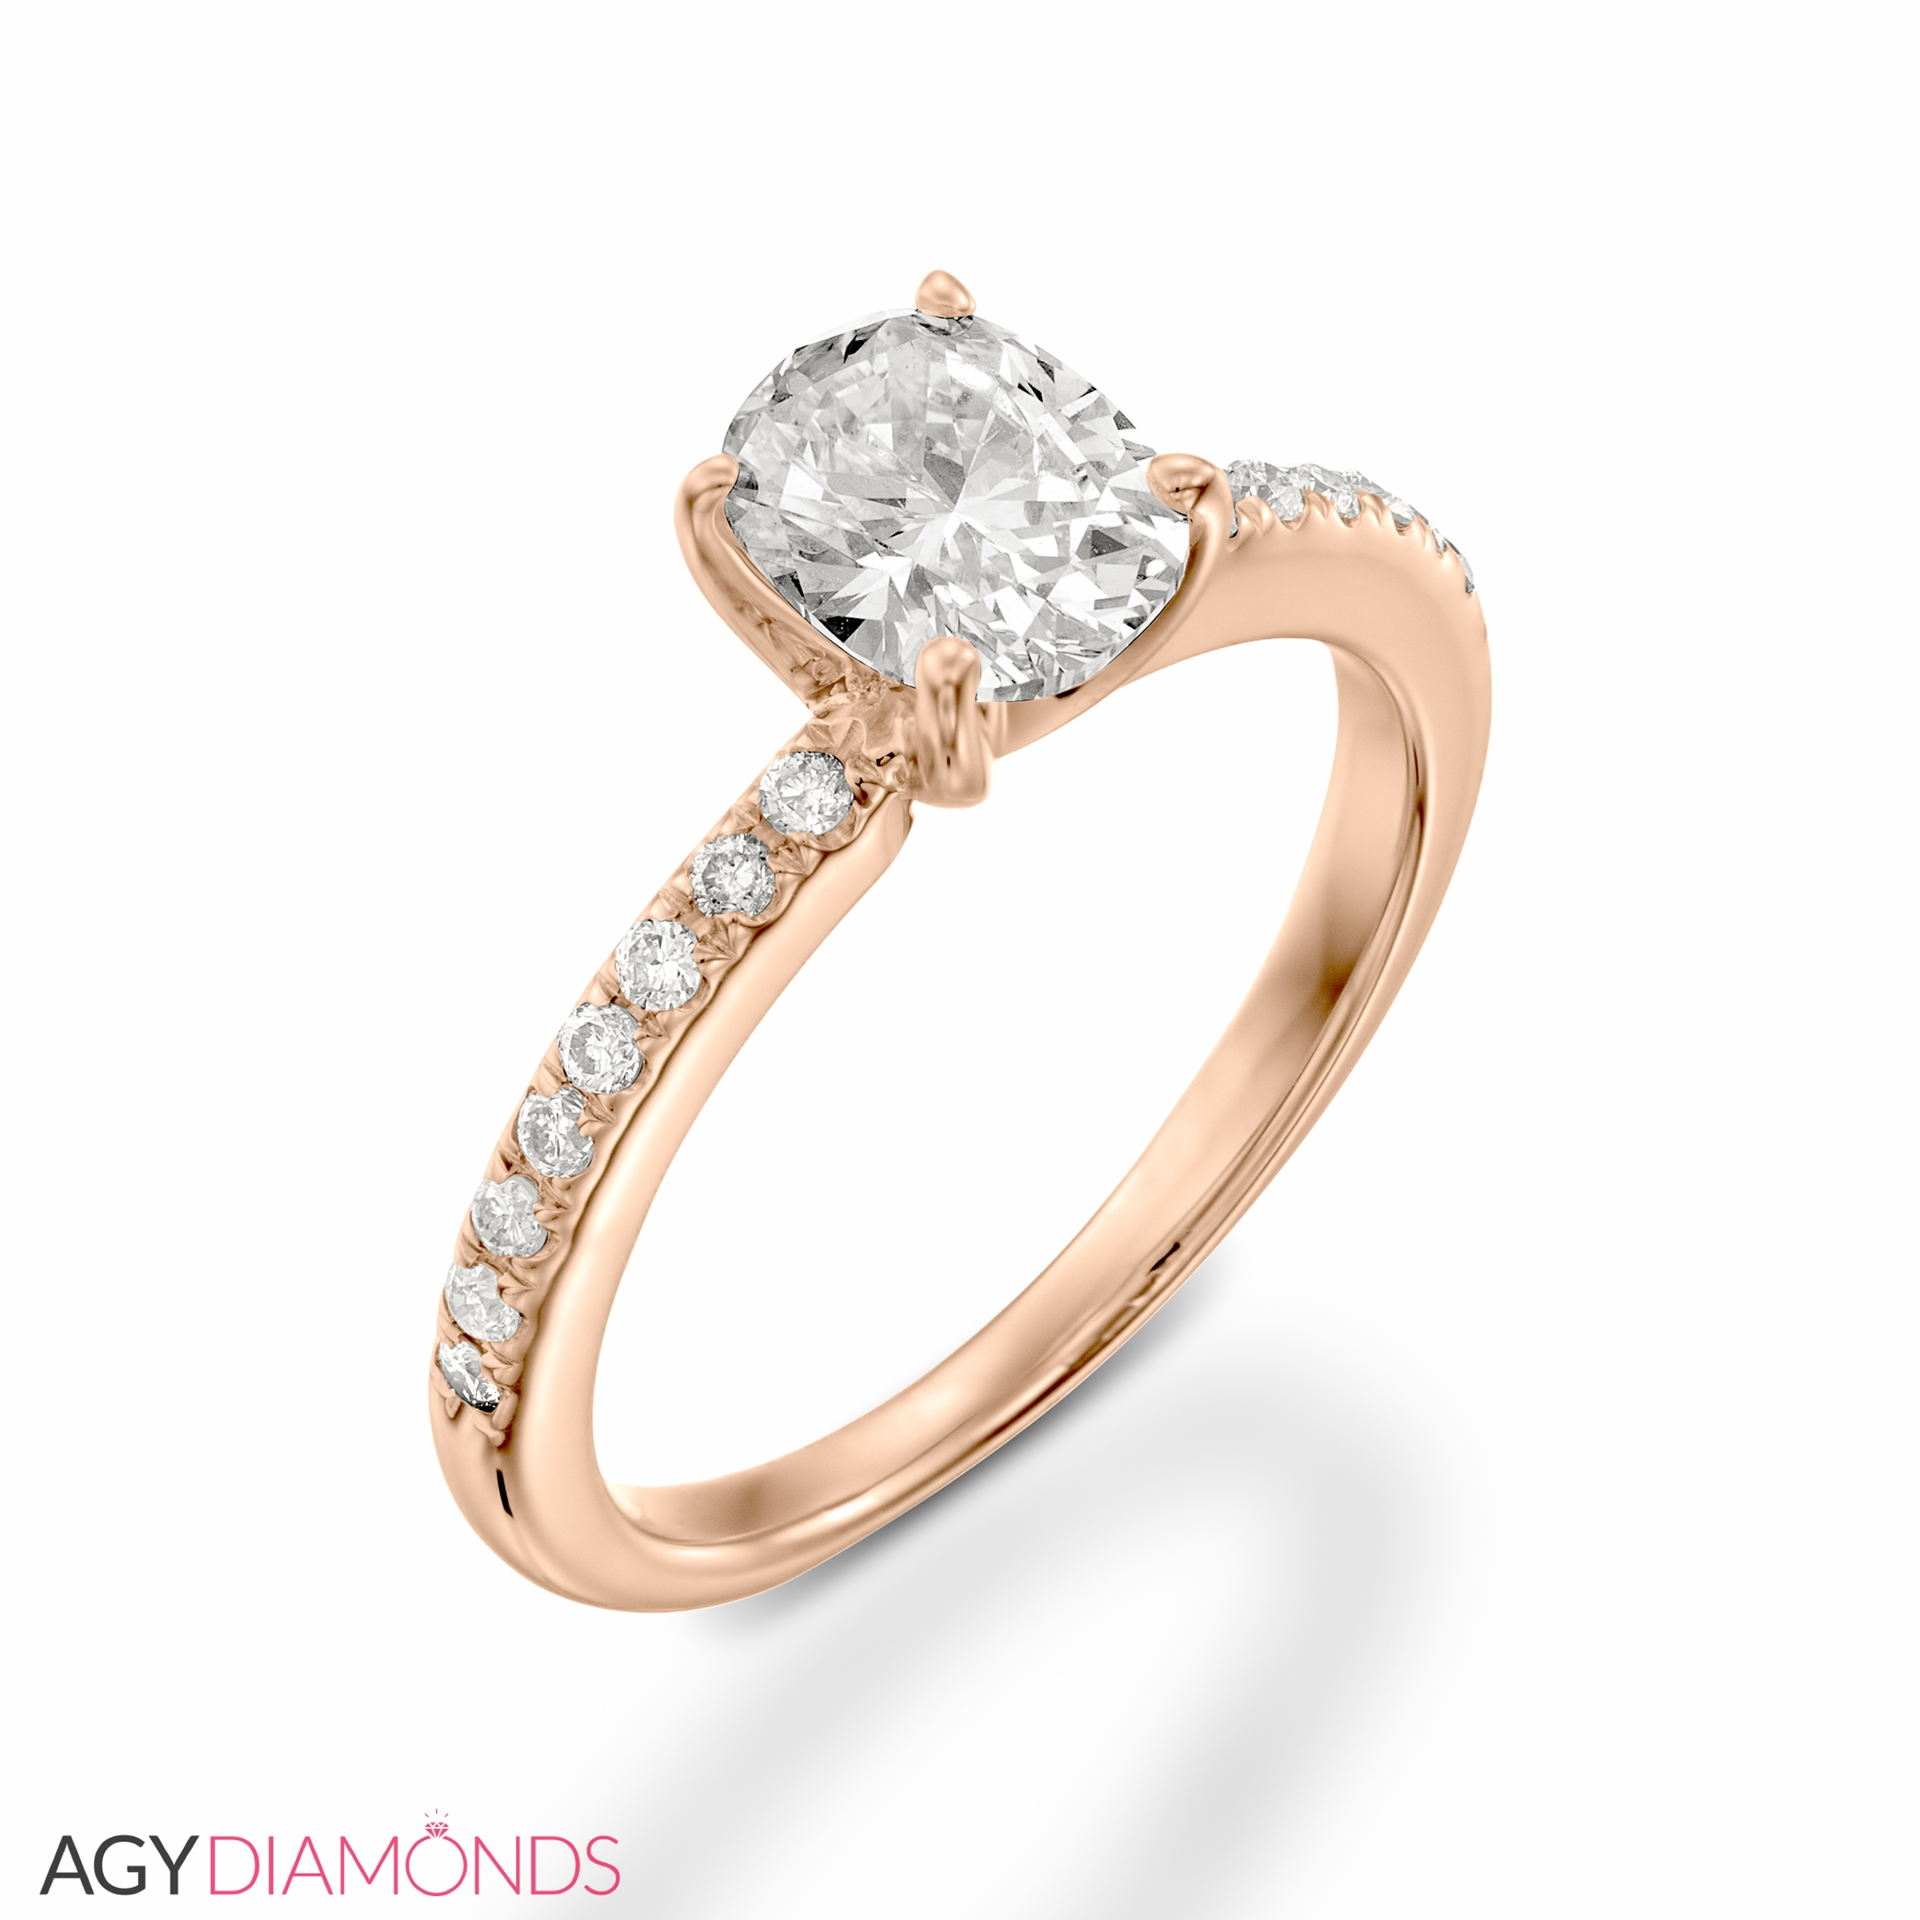 designers that theyre oval engagement re prove the regarding rings of they jewellery best